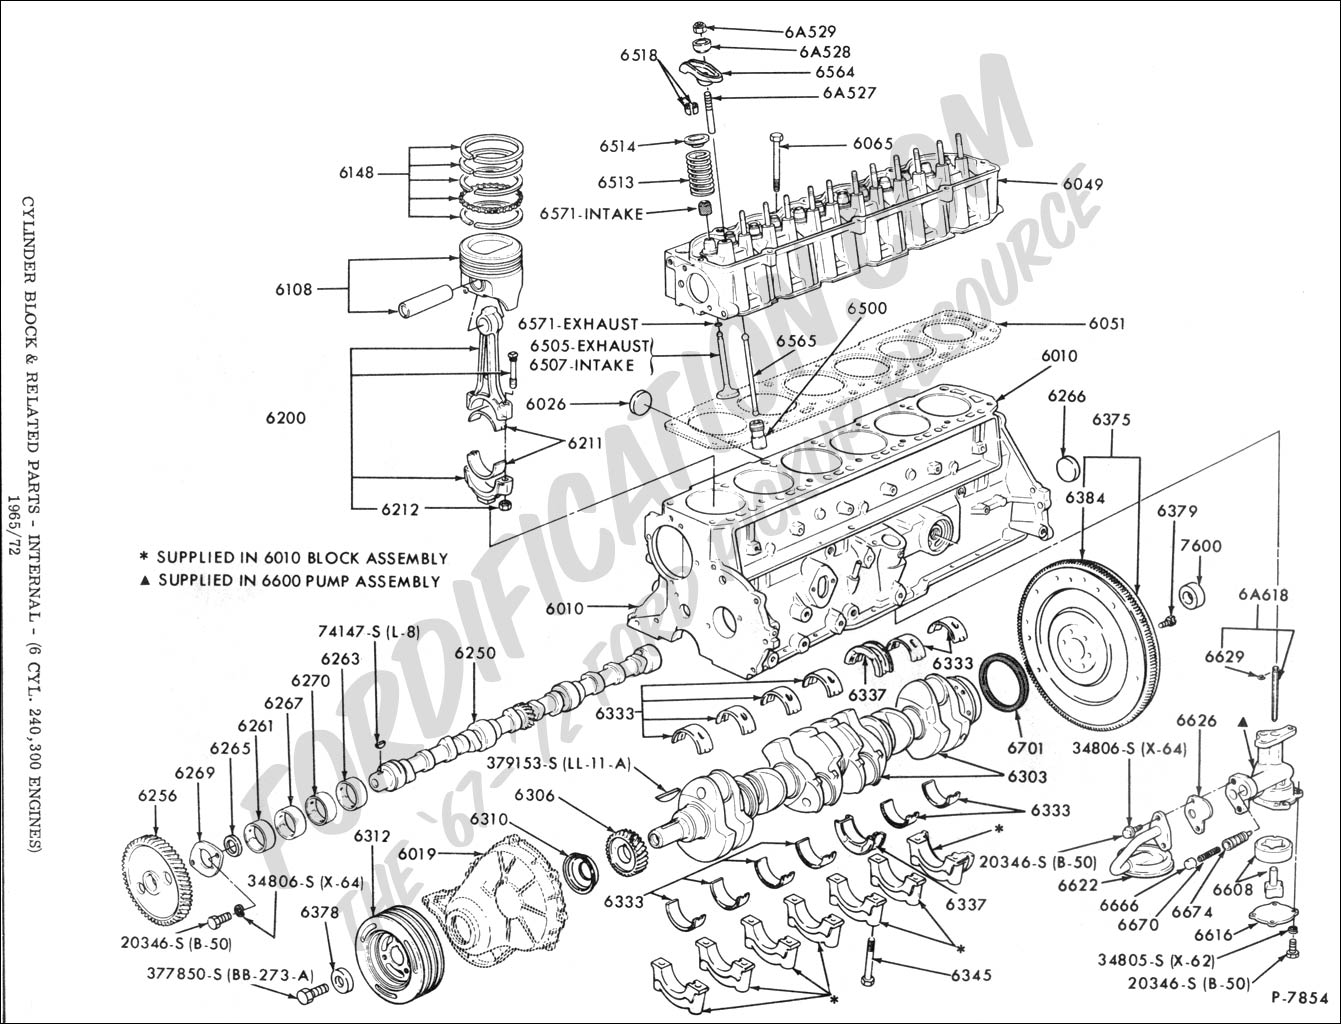 Ford Truck Technical Drawings And Schematics Section E Engine 1971 F100 Wiring Diagram Factory Related Components